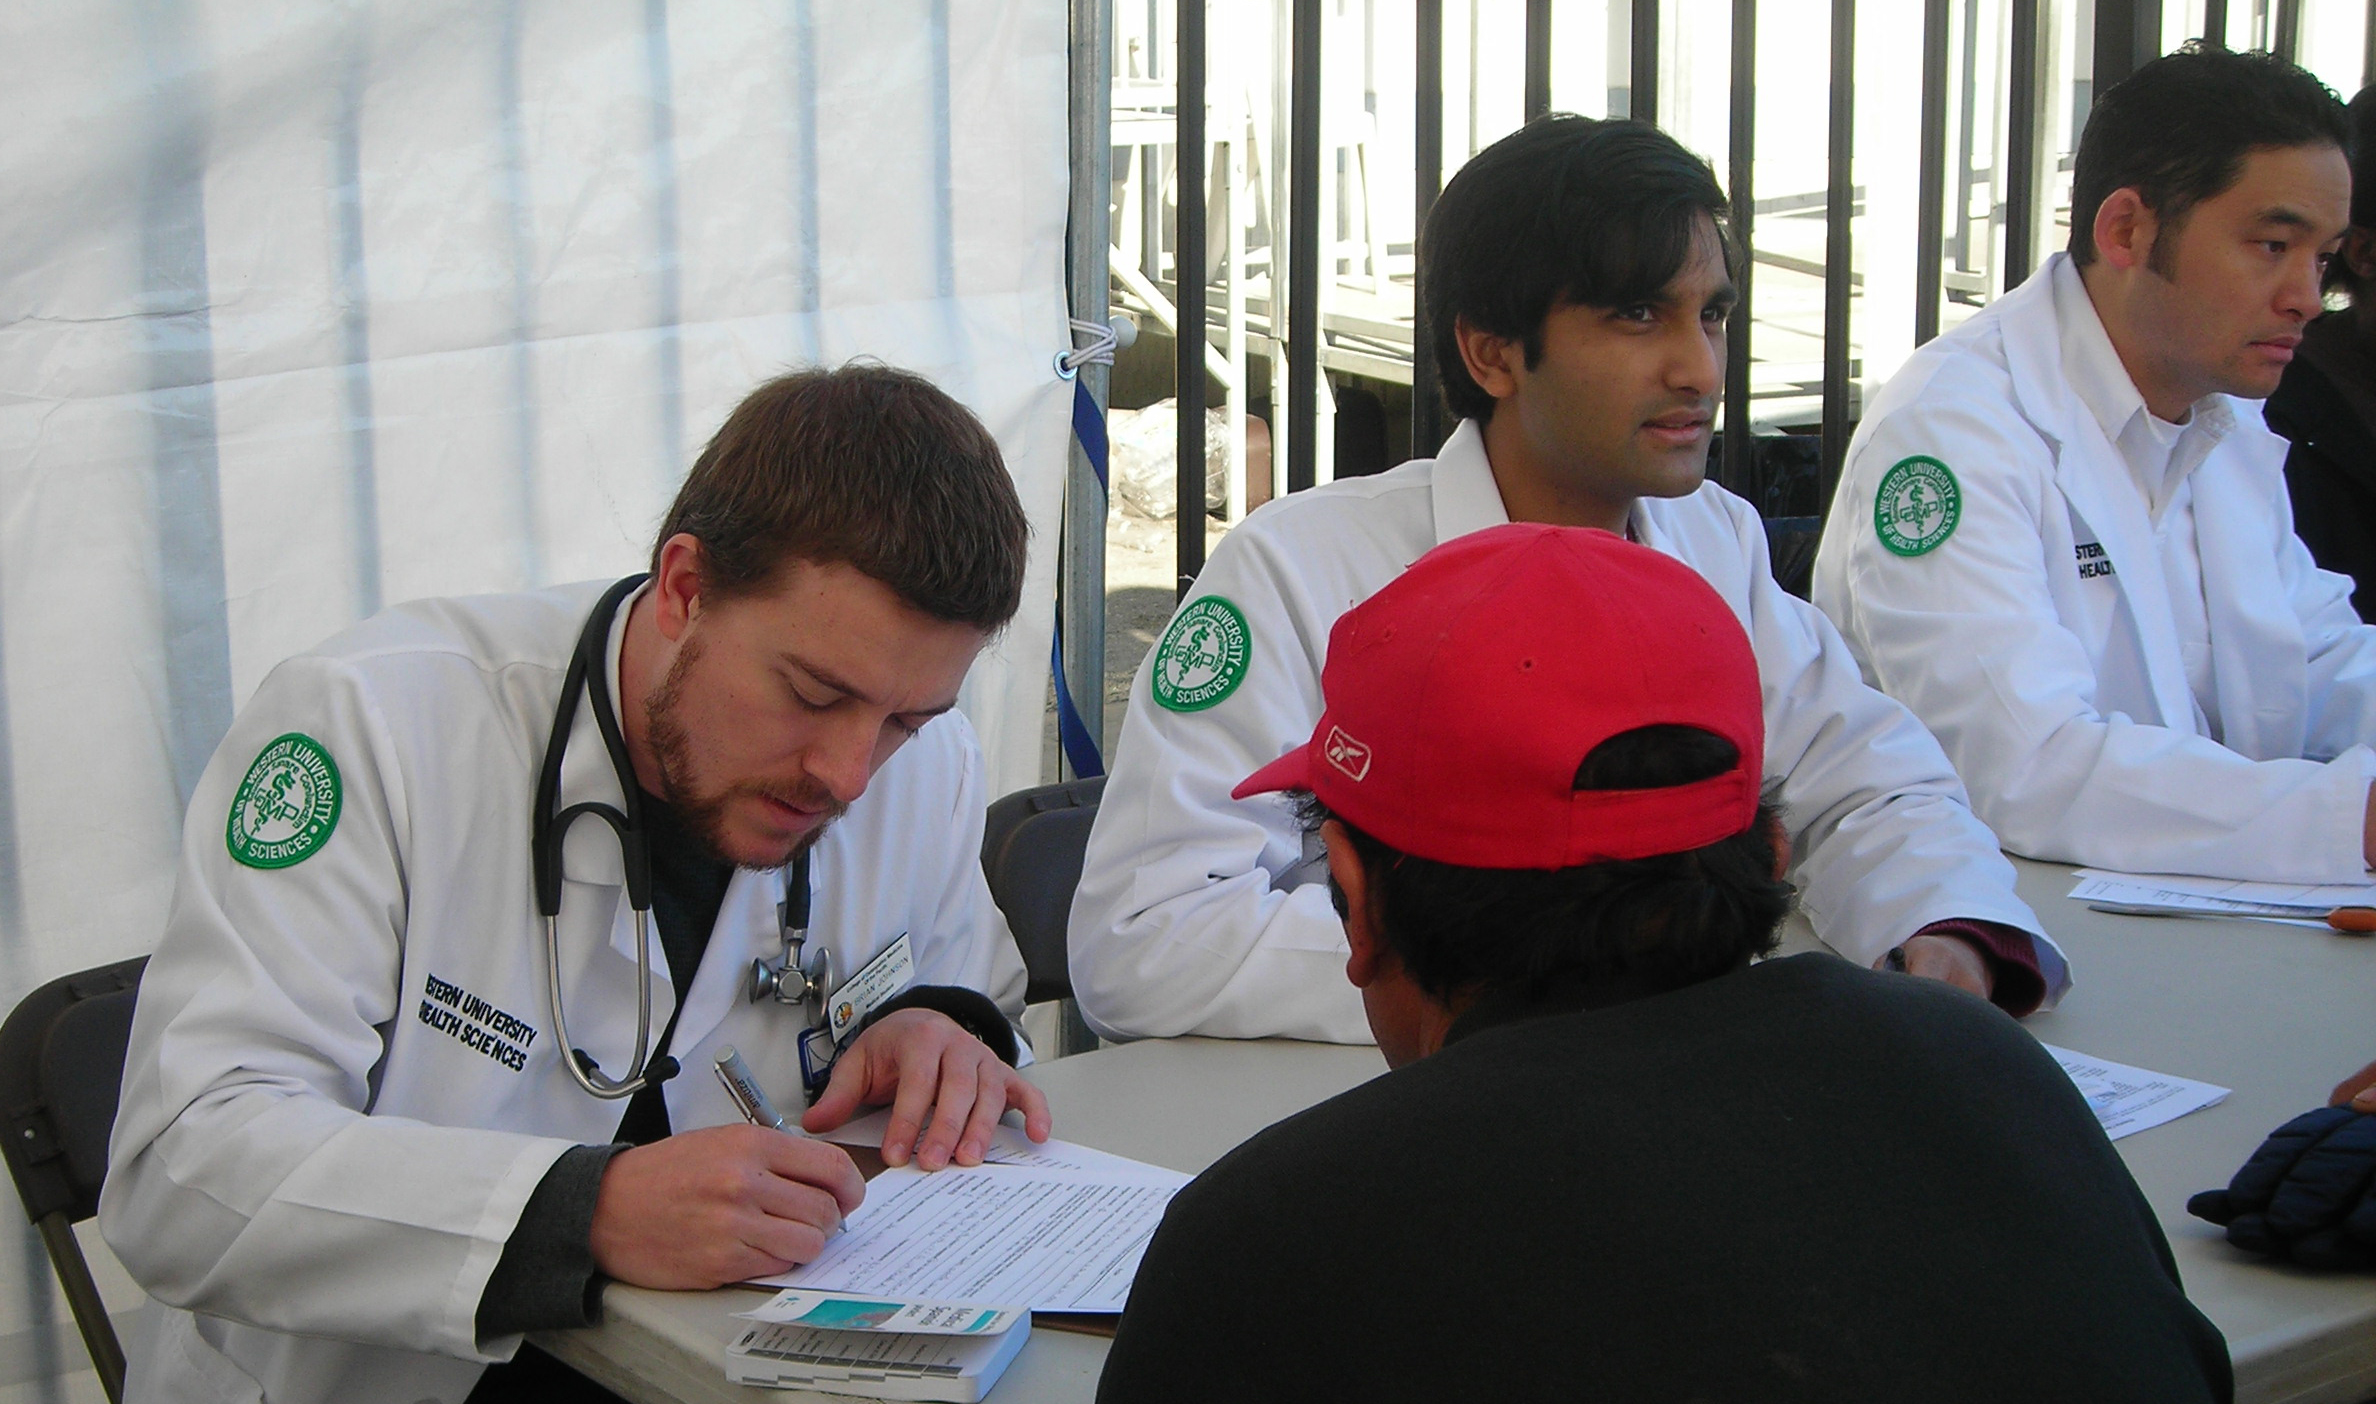 Faculty and students in white coats with a patient during an outdoor event.